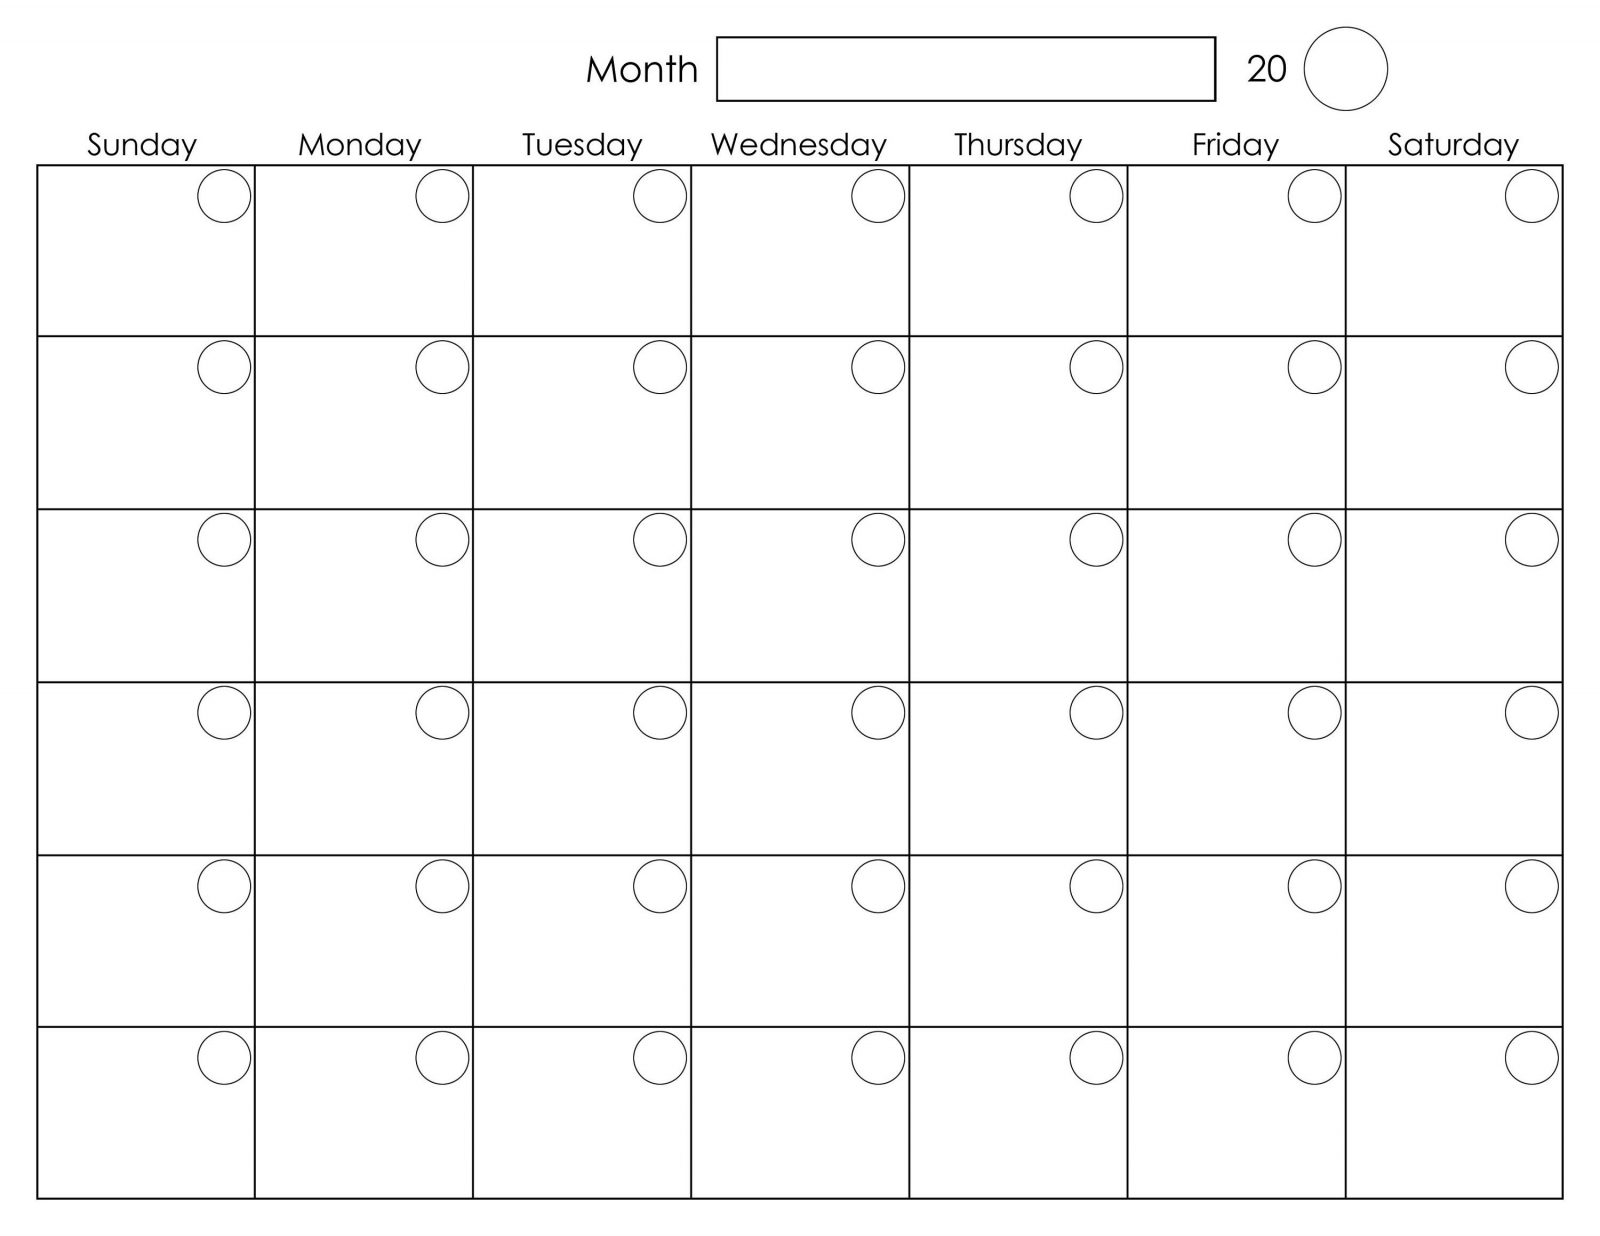 Free Printable 2020 Calendar Template Pdf, Word, Excel, Page regarding Blank One Month Calendar